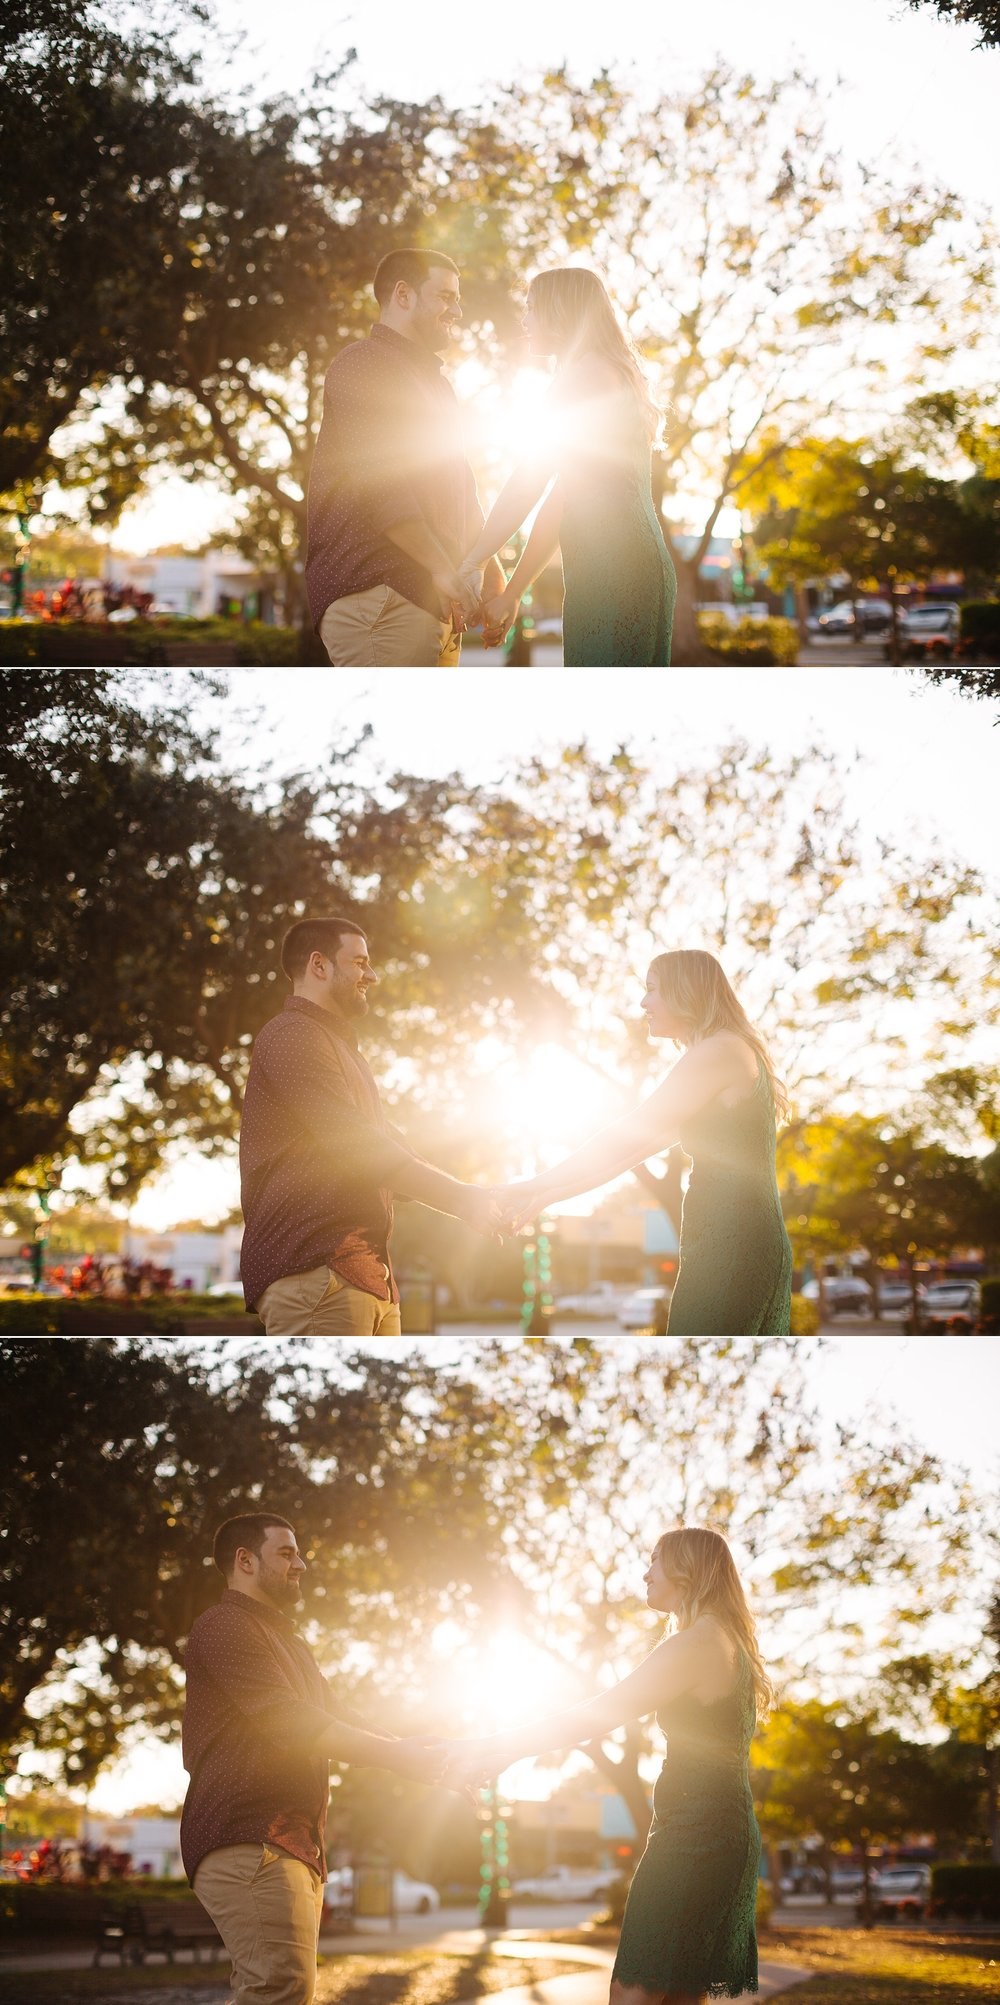 downtown dunedin engagement photos jake and katie photography ivan & hannah-4.jpg